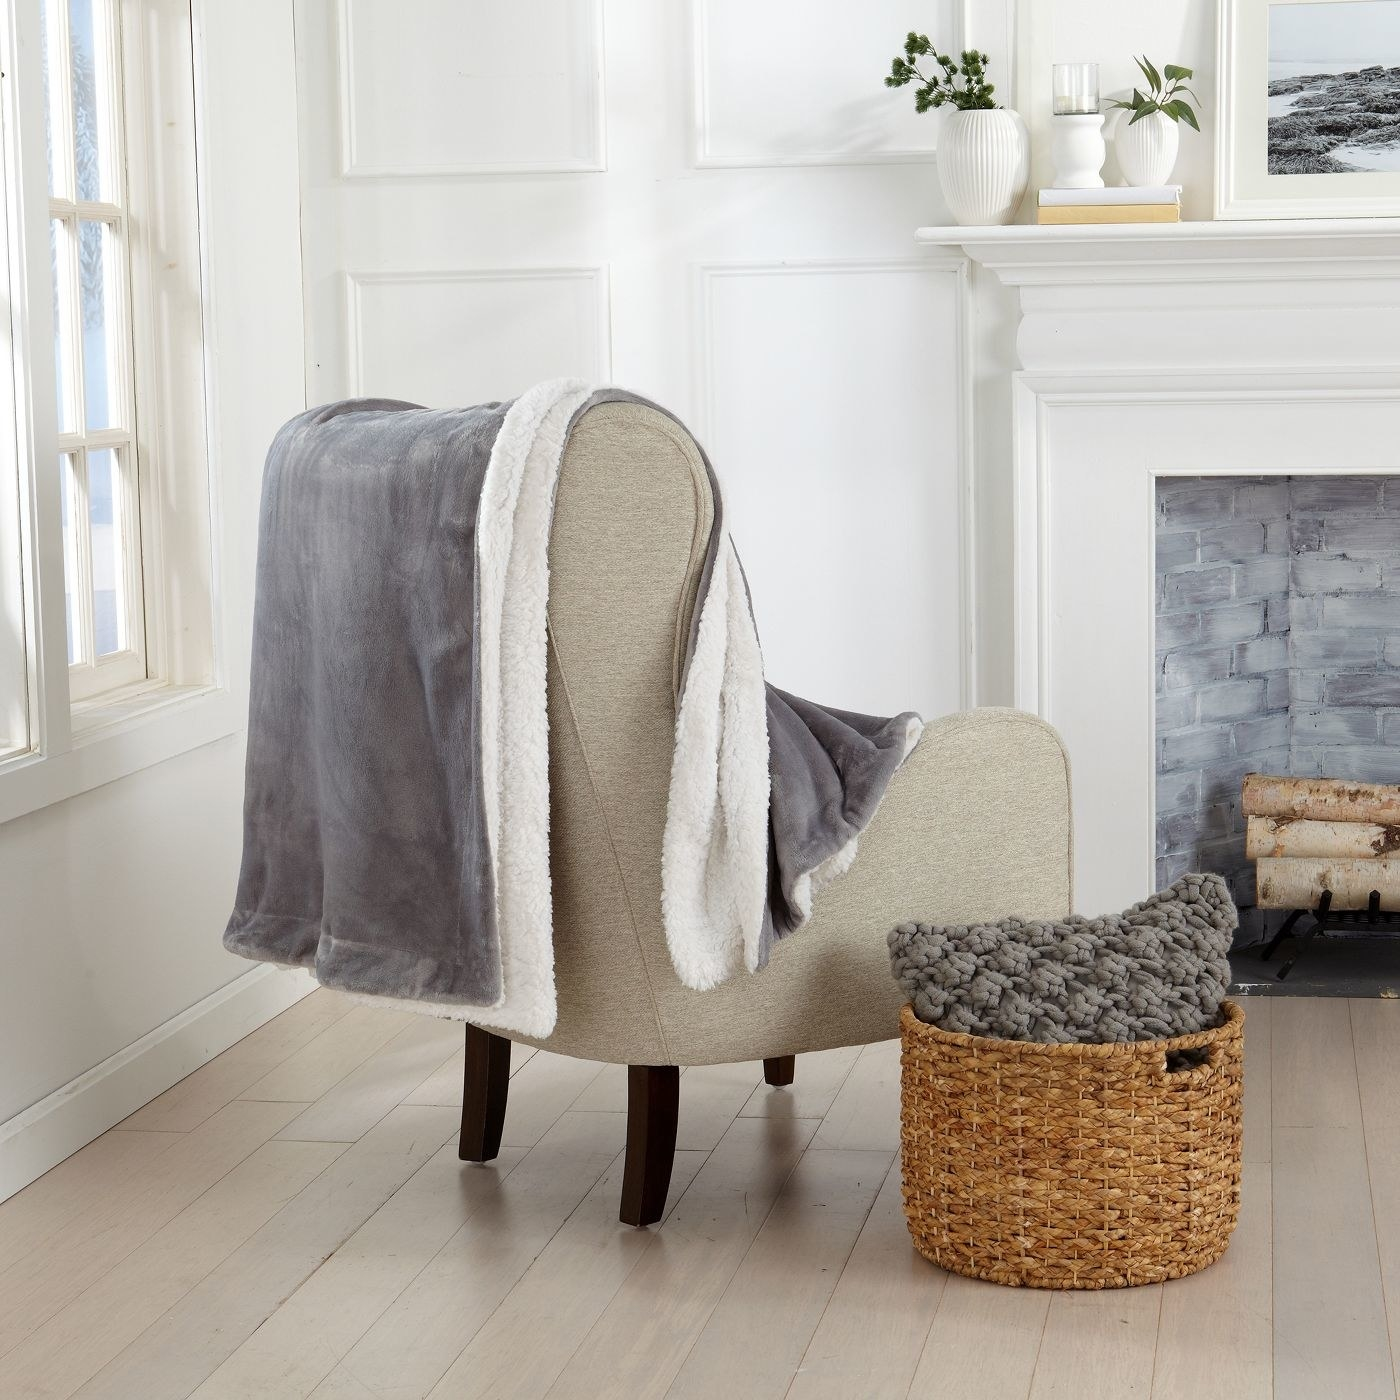 A grey plush sherpa throw blanket